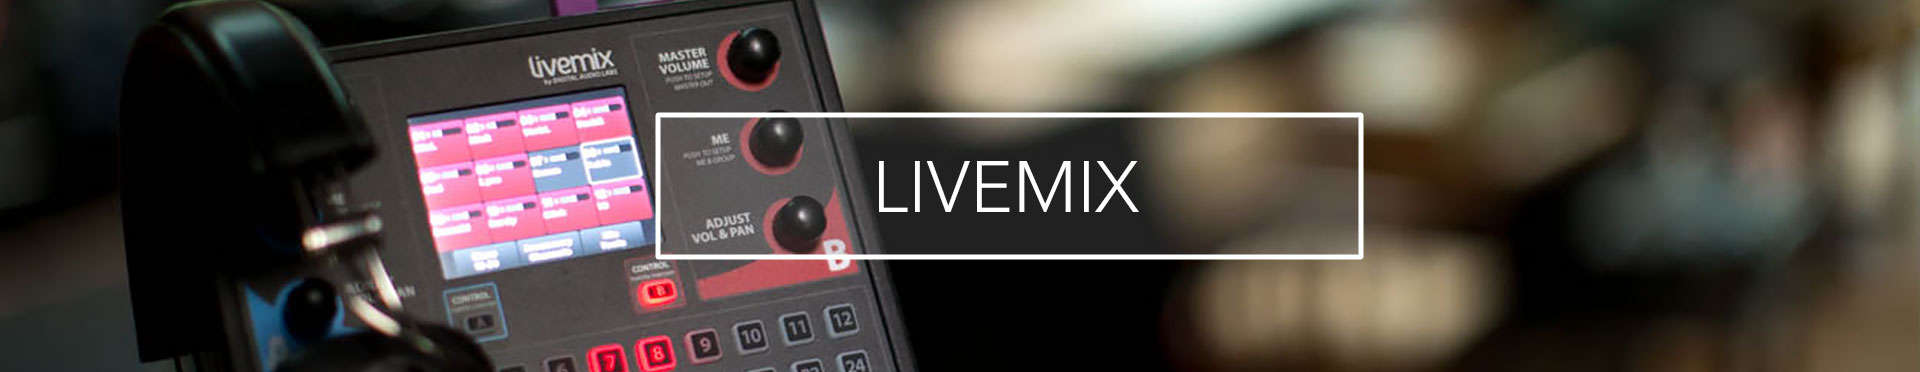 Livemix personal monitor system header banner with CS-DUO two mix personal mixer